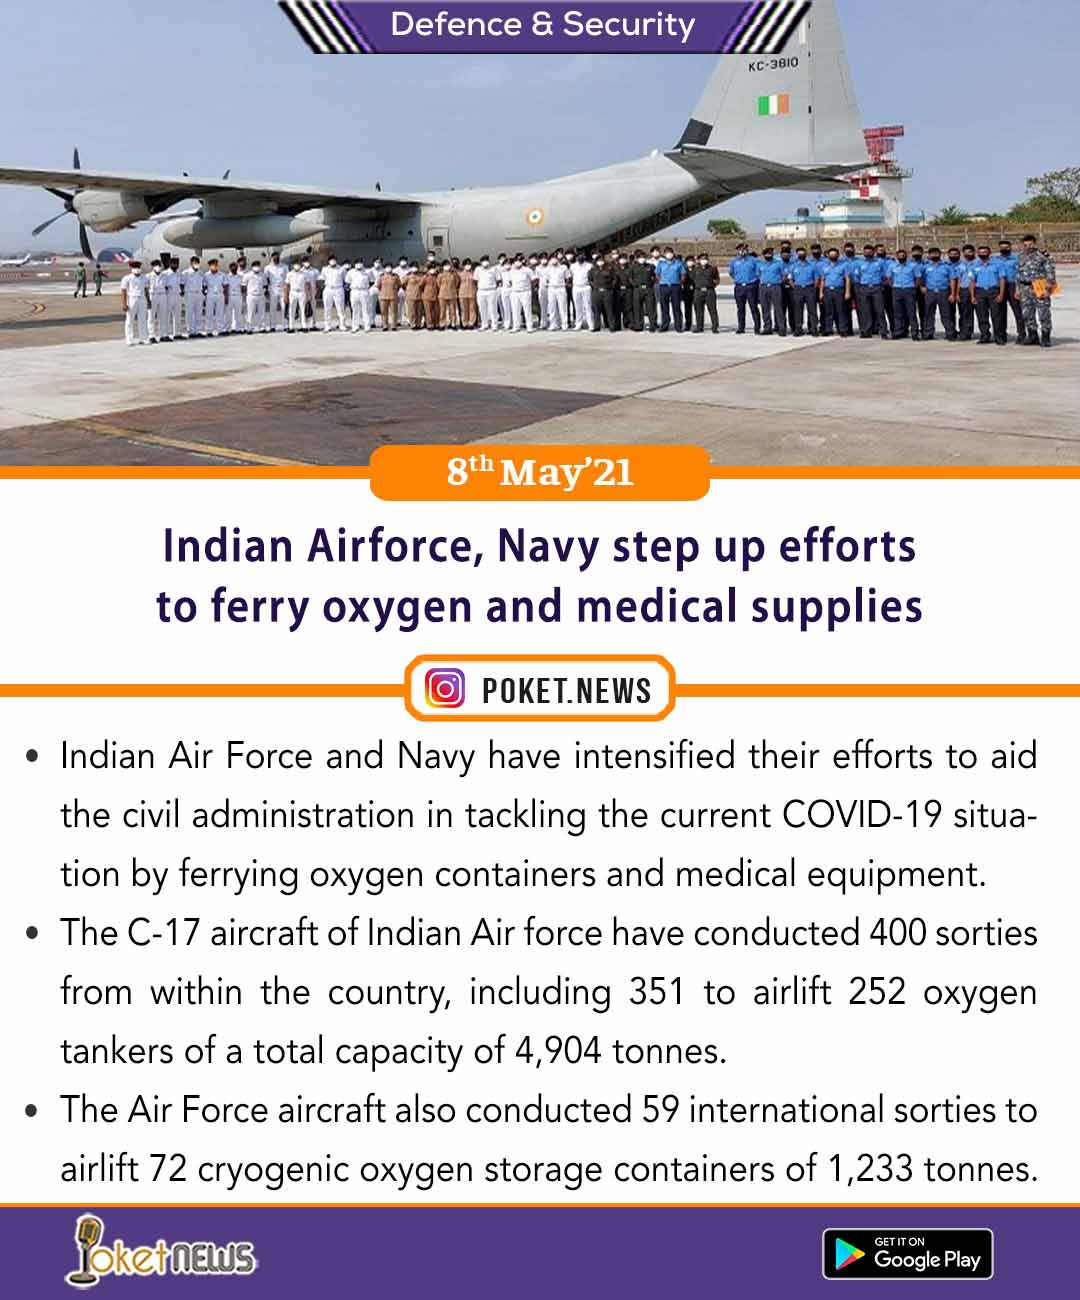 Indian Airforce, Navy step up efforts to ferry oxygen and medical supplies